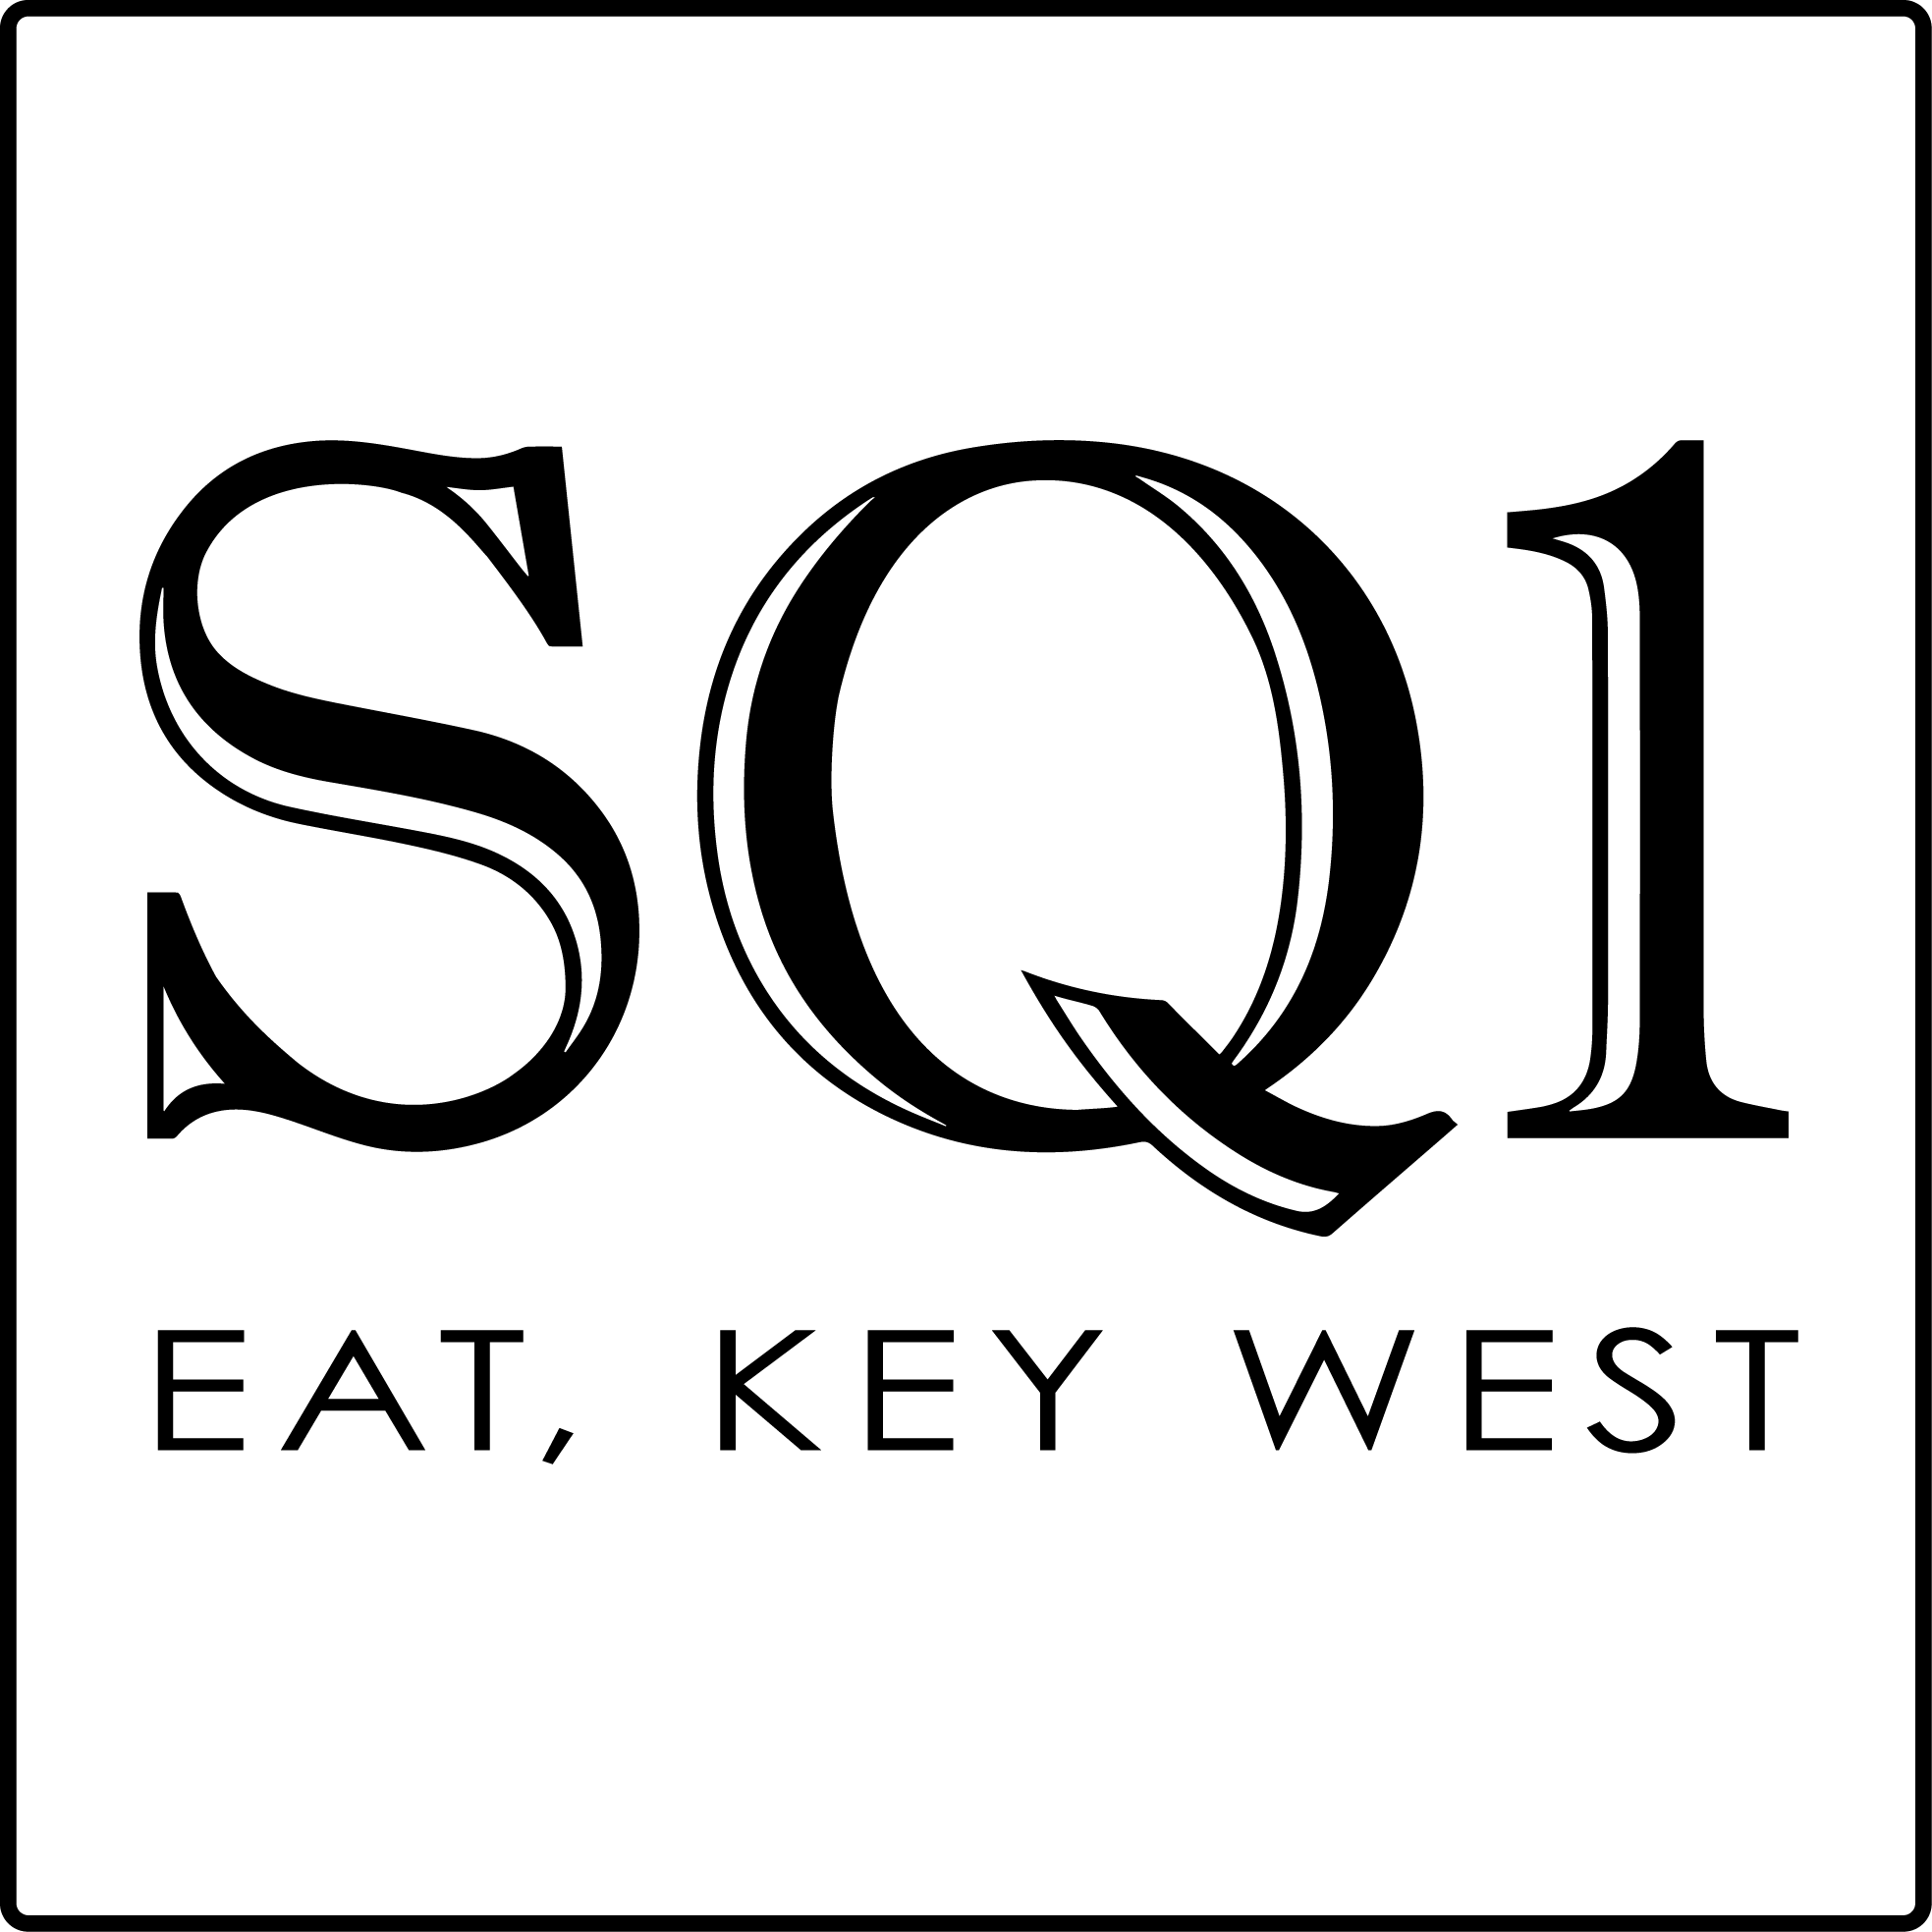 SQ1-NEW_Logo_Square_6.5x6.5.png